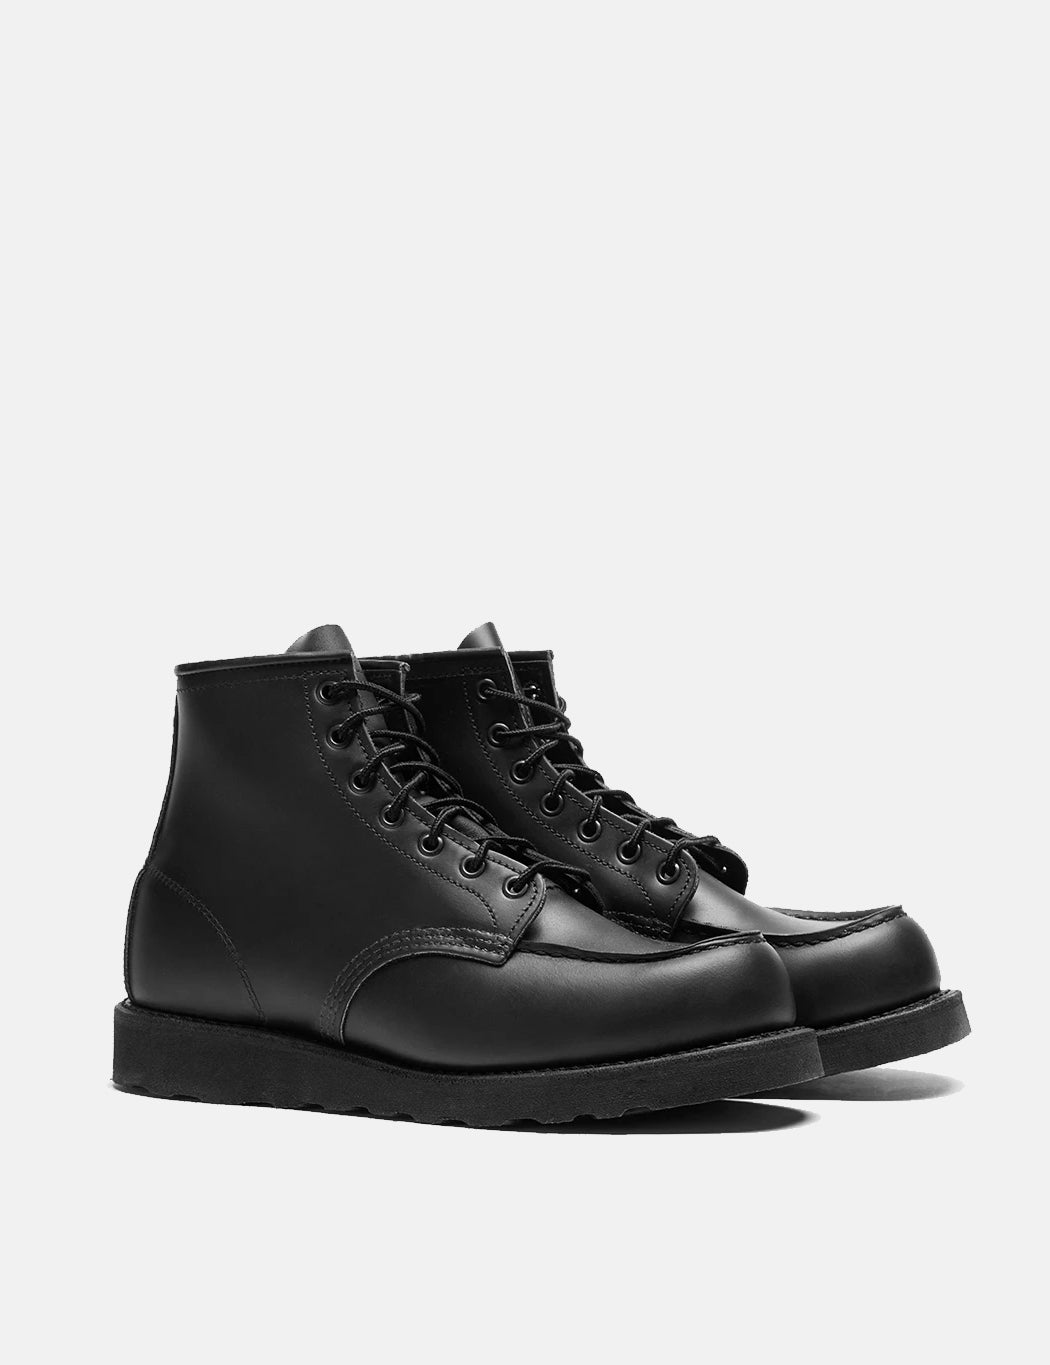 """Red Wing 6"""" Moc Toe Boots (8137) - Skagway Black